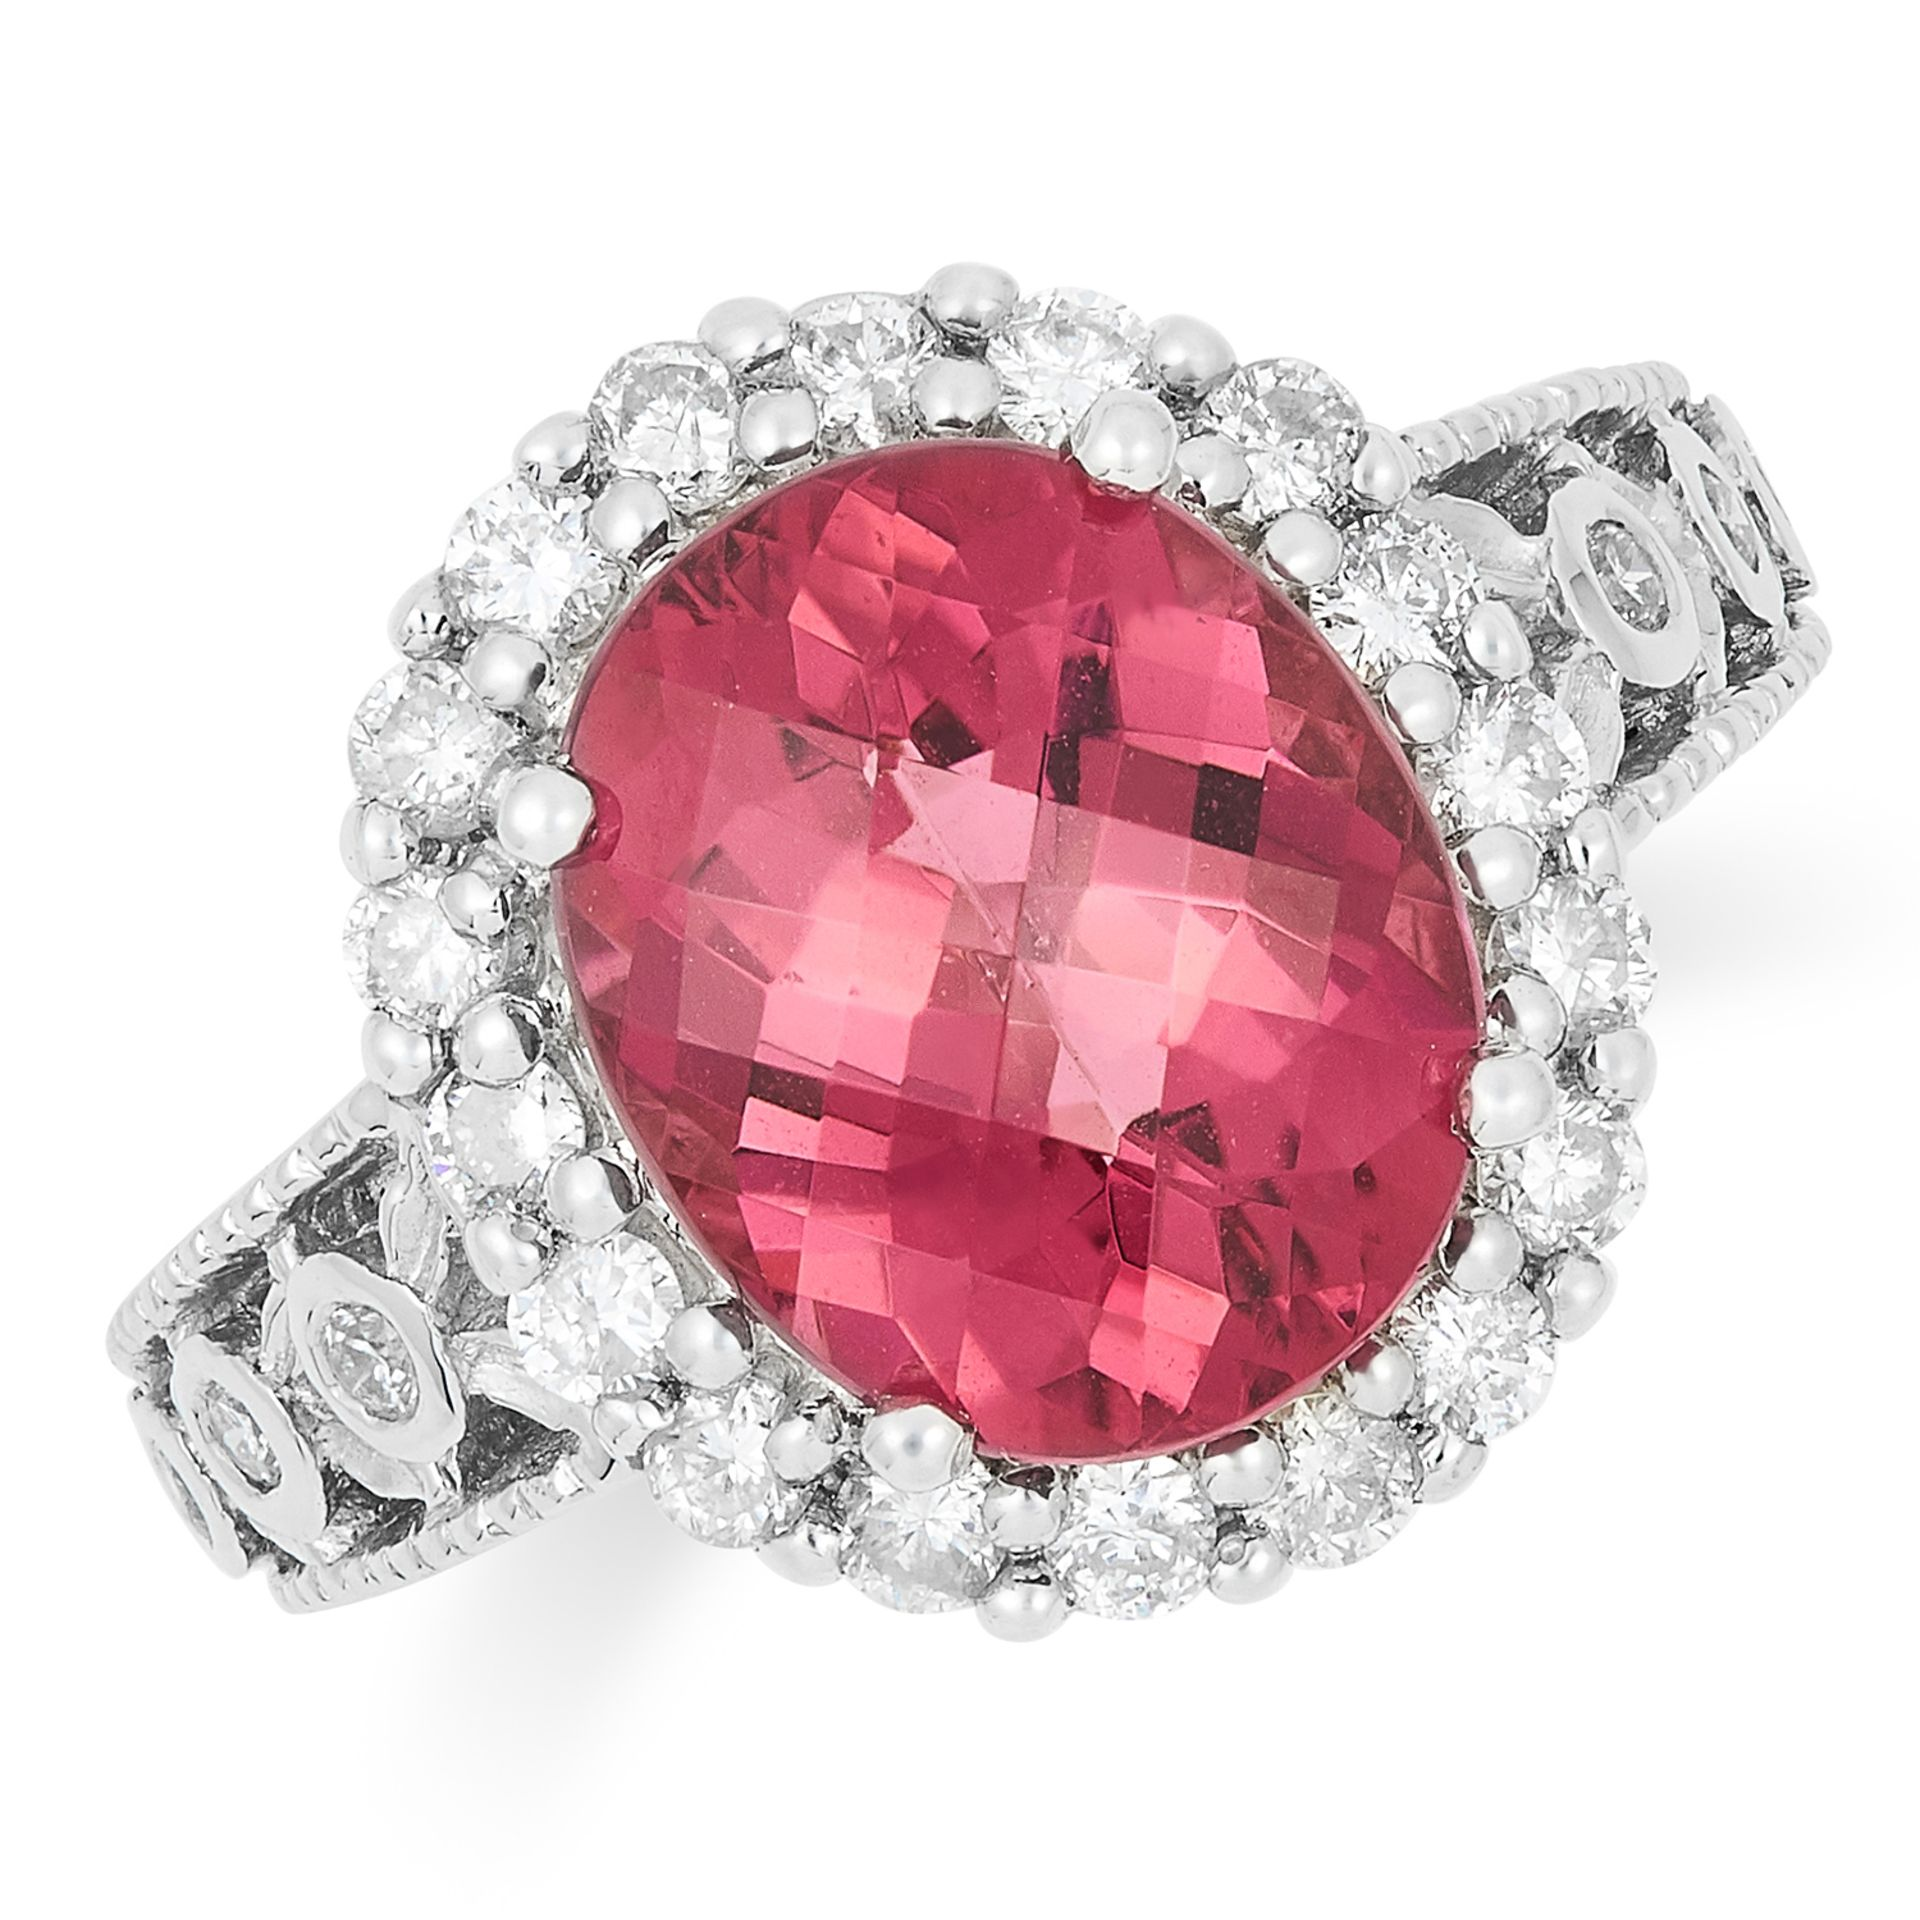 PINK TOURMALINE AND DIAMOND DRESS RING, set with a faceted oval cut tourmaline and round cut